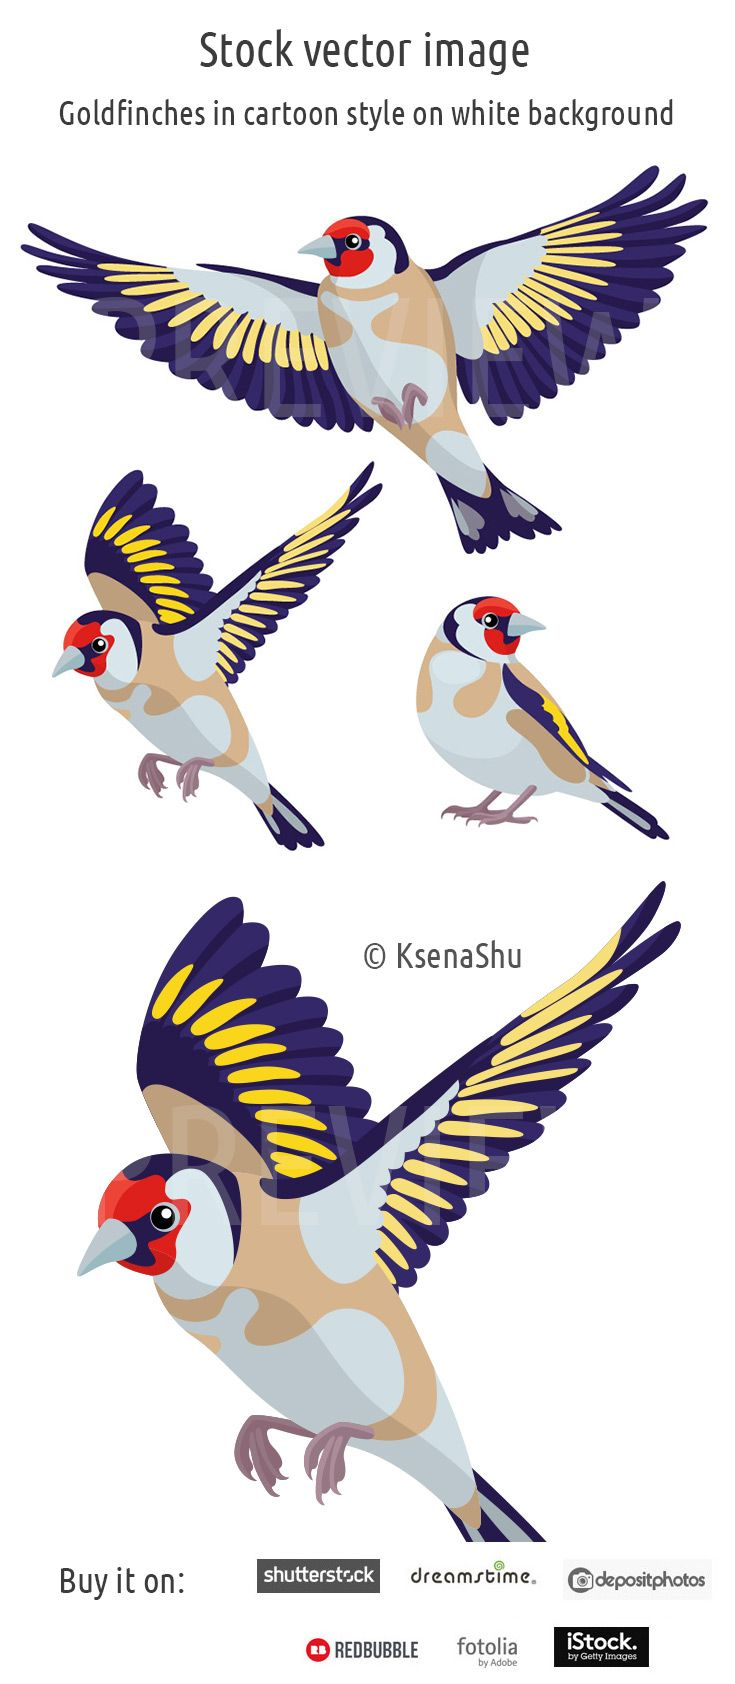 Stock image. Goldfinches in cartoon style on white background #vector #bird #flyingbird #vectorillustration #stock